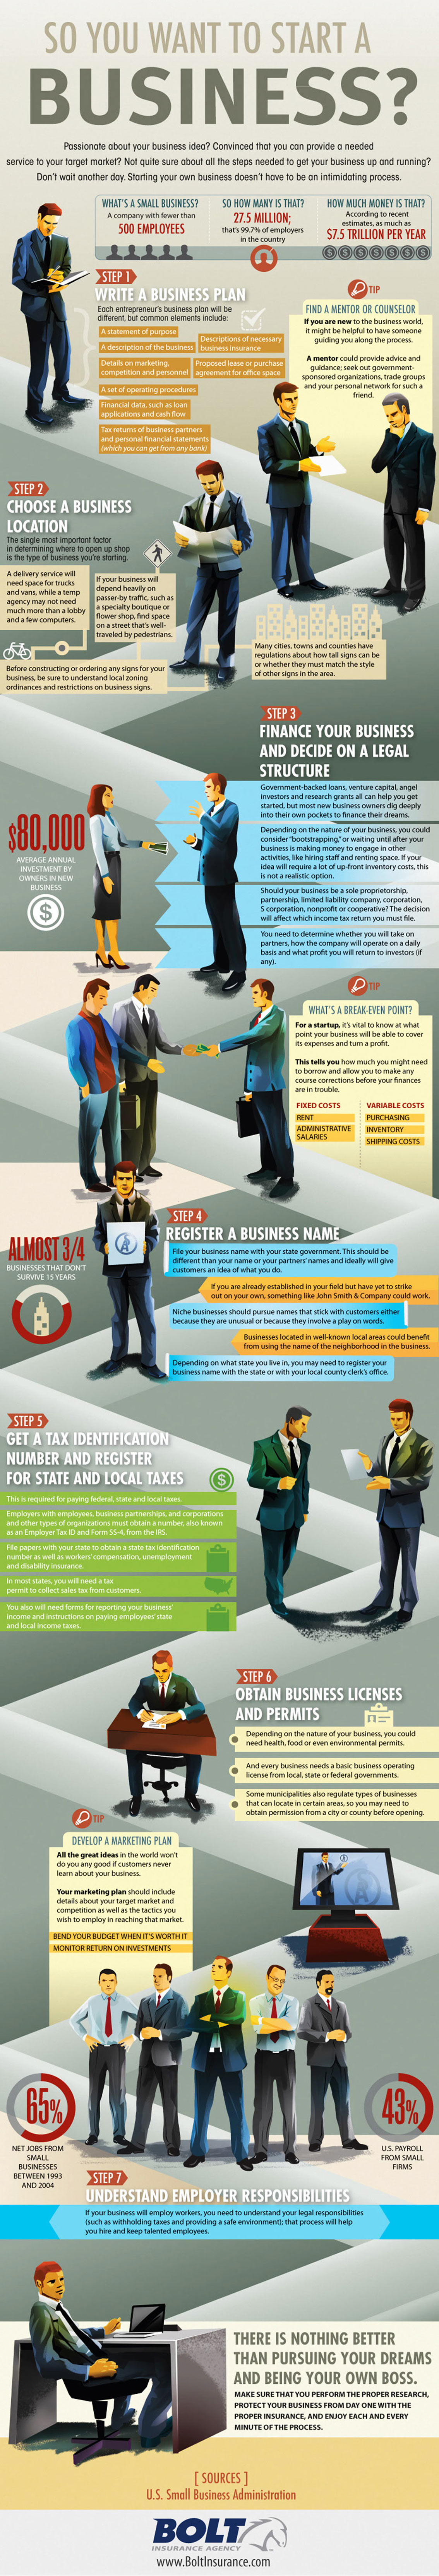 How to Start a Business Infographic